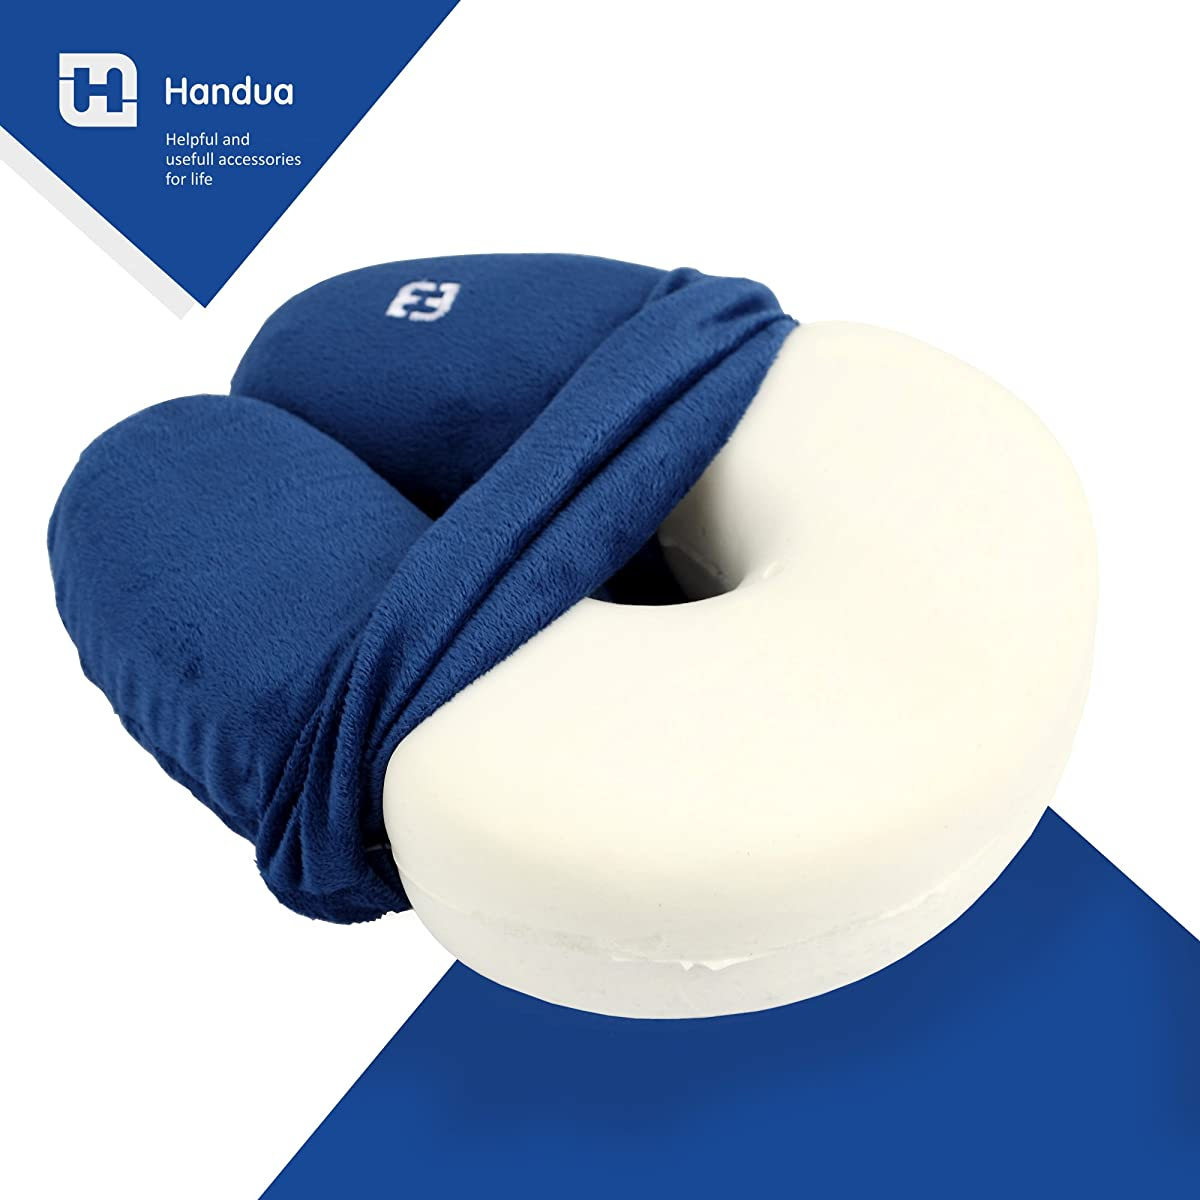 Travel Pillow Made Of Memory Foam With 3 Pillow Cases